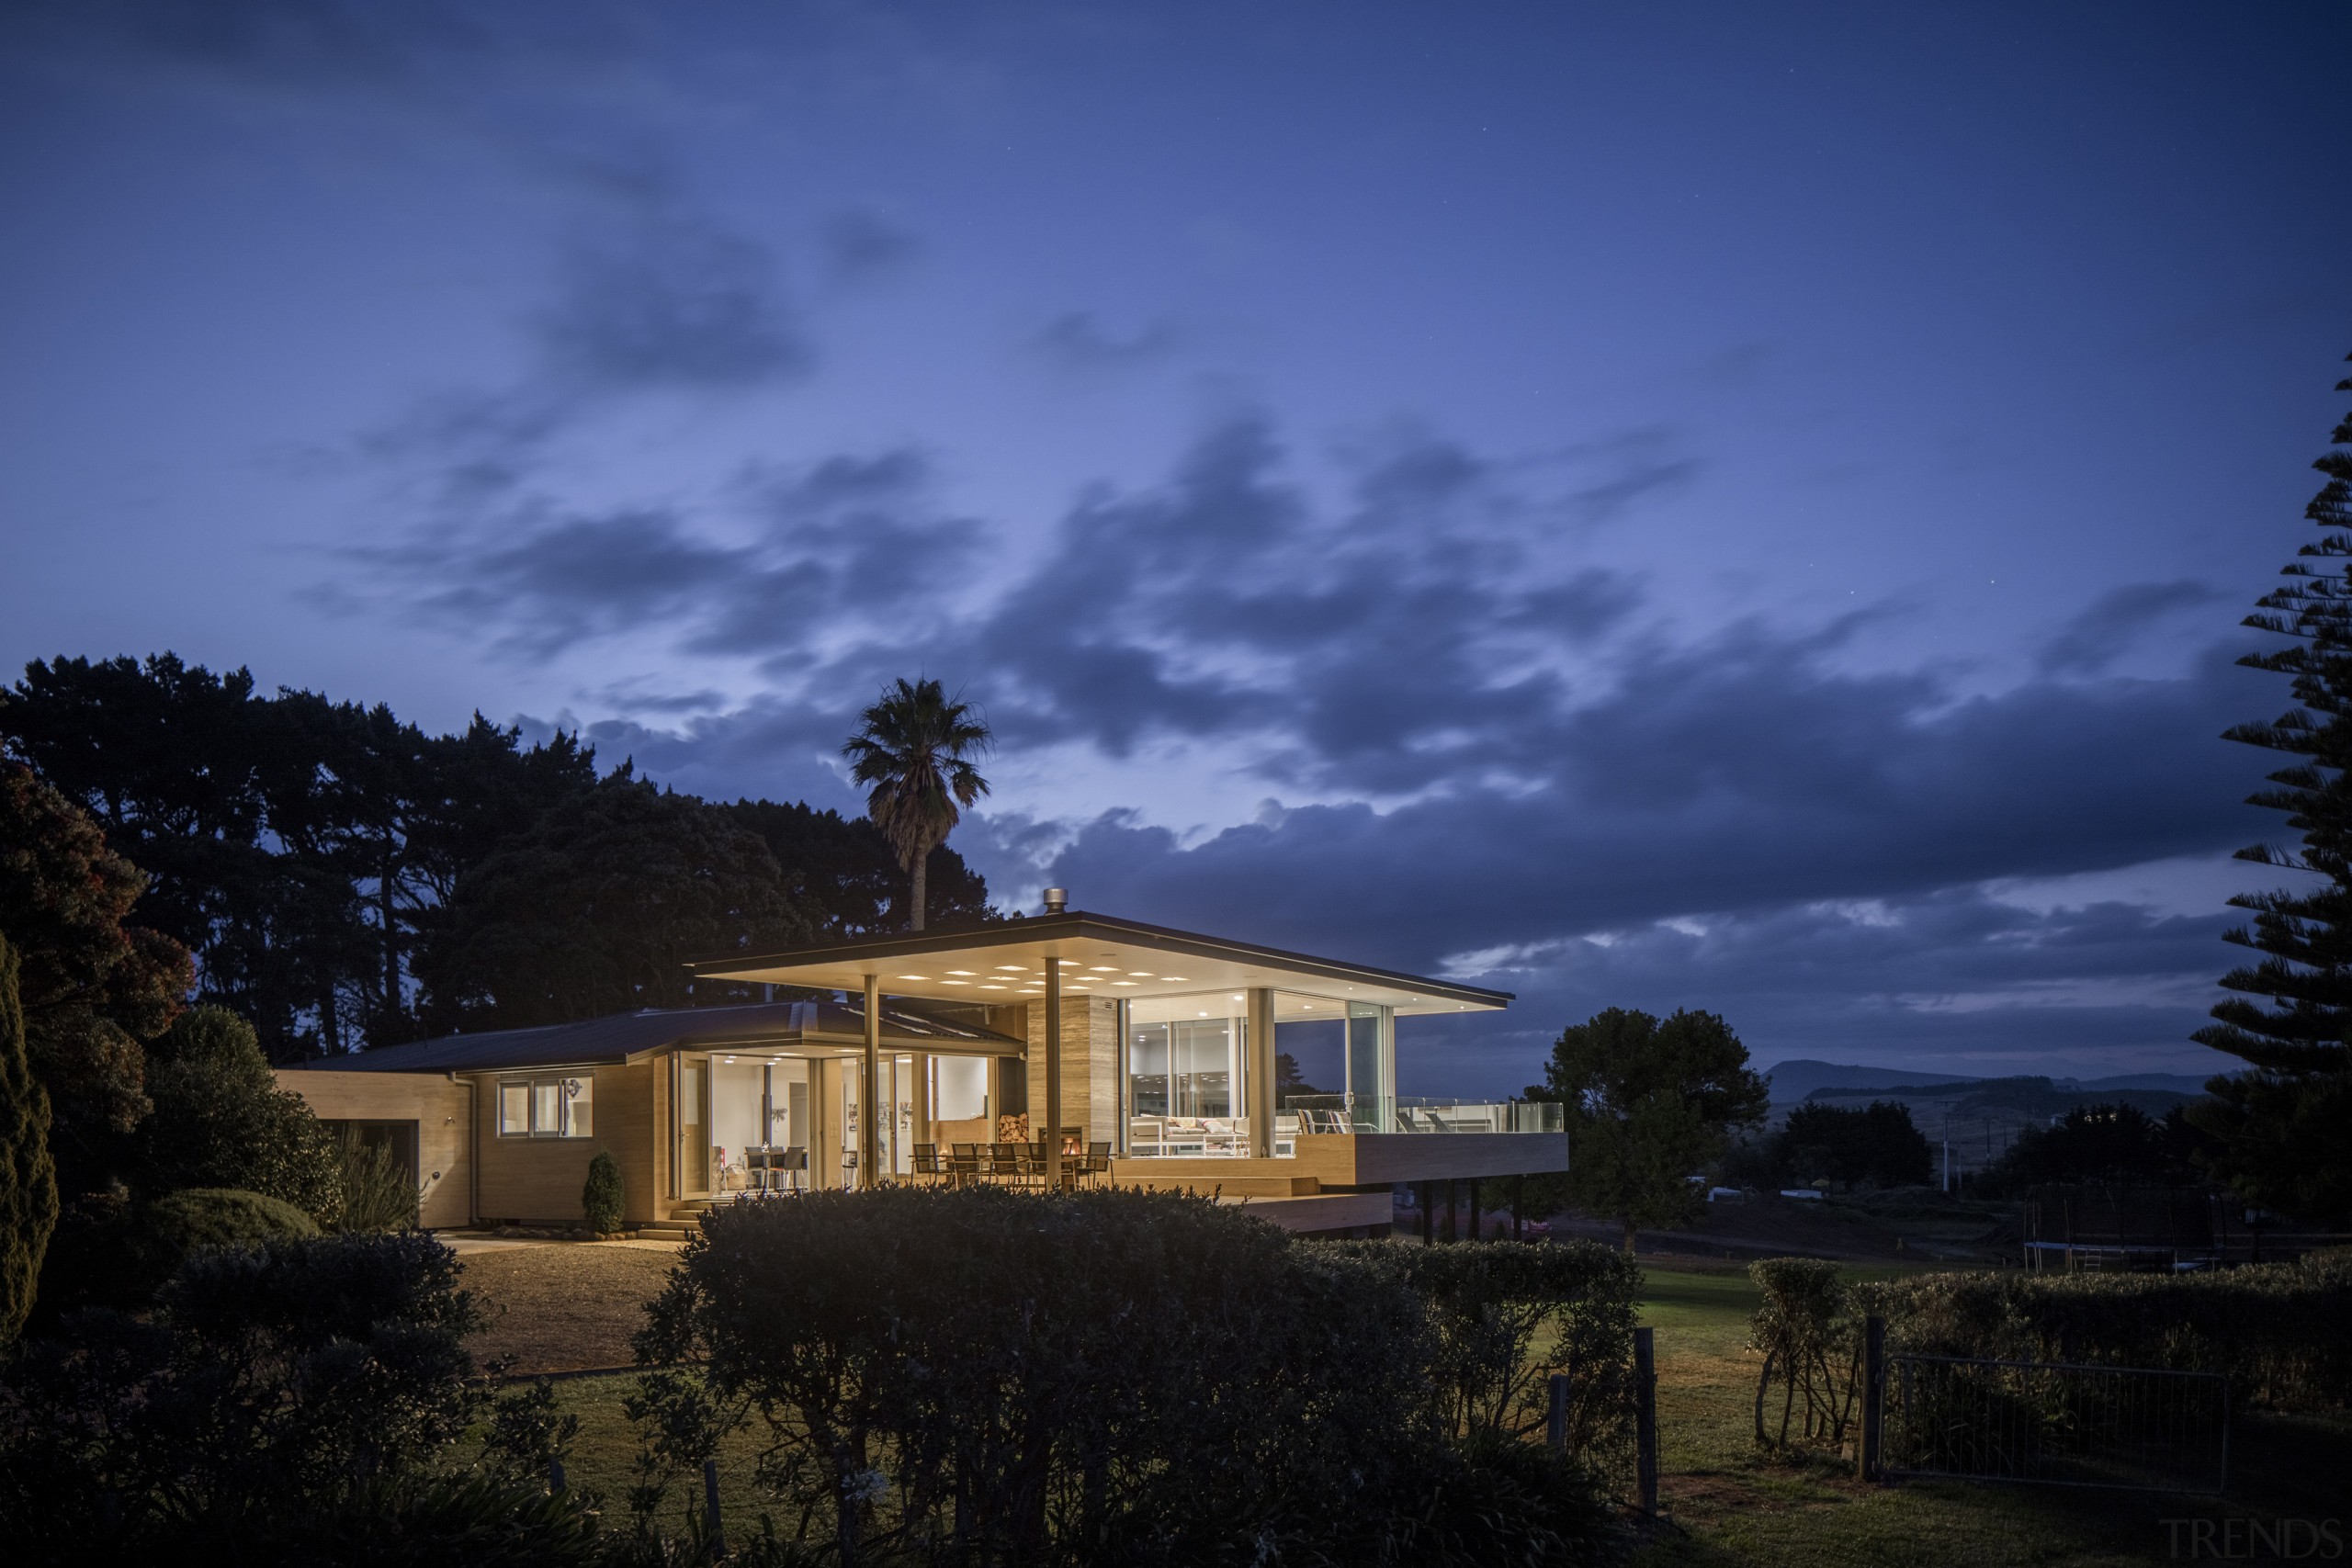 This substantial renovation of a lakeside home by architecture, atmosphere, cloud, cottage, darkness, dawn, dusk, estate, evening, farmhouse, highland, home, horizon, house, landscape, lighting, mansion, meteorological phenomenon, morning, nature, night, phenomenon, property, real estate, residential area, rural area, sky, sunlight, tree, blue, black